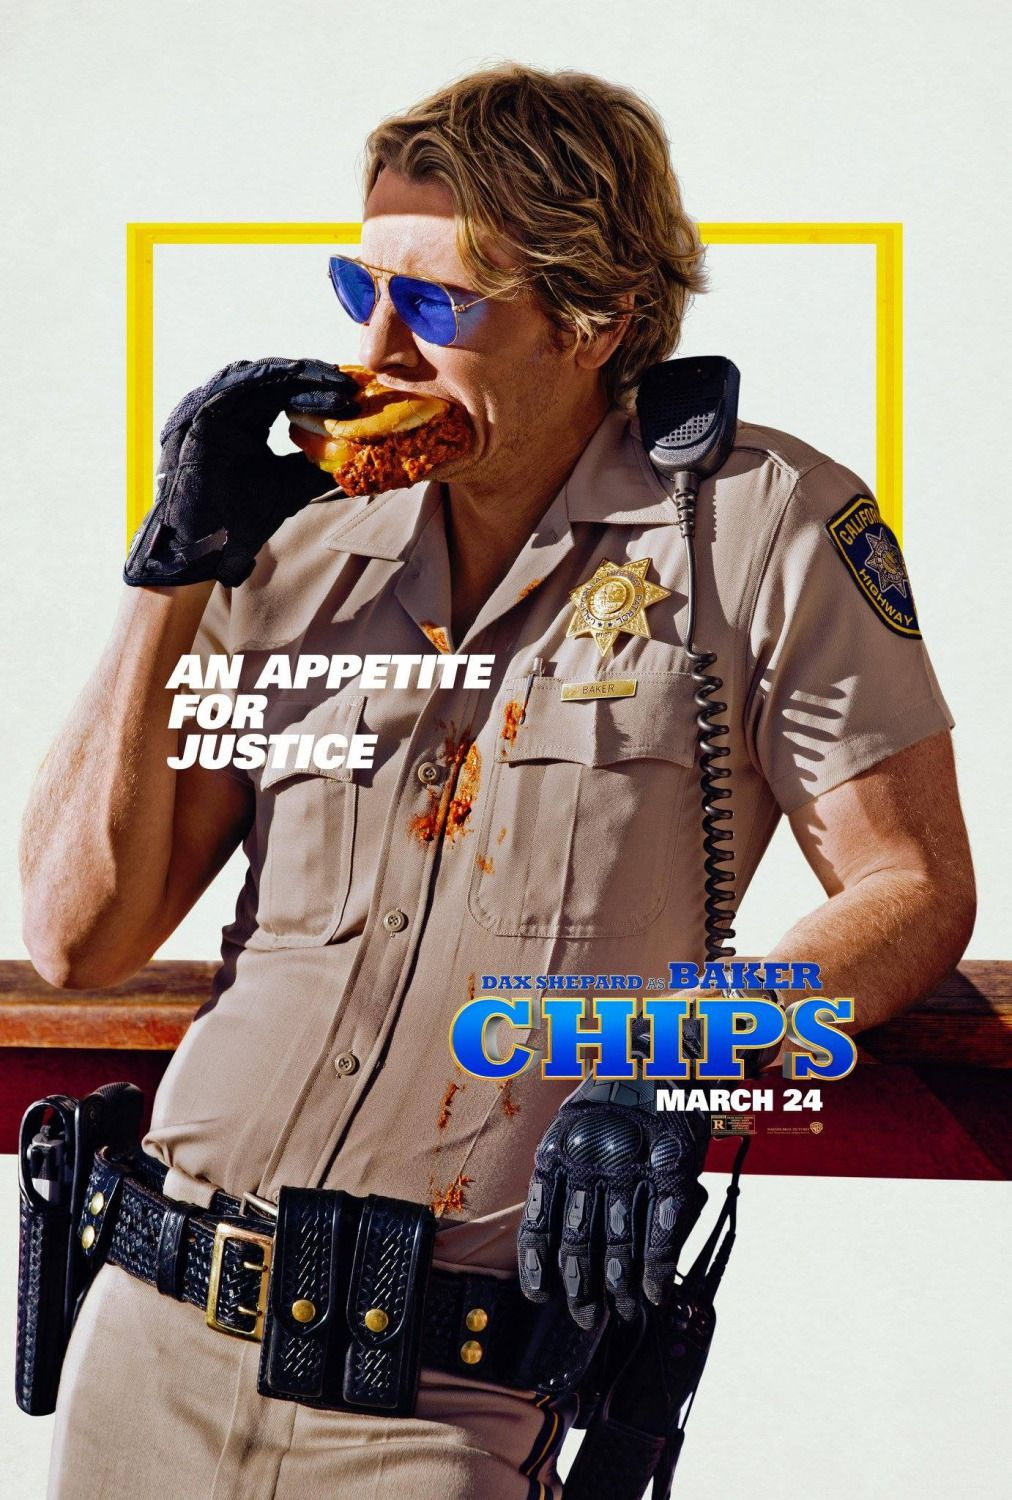 CHiPs Movie Posters with Michael Pena and Dax Shepard http